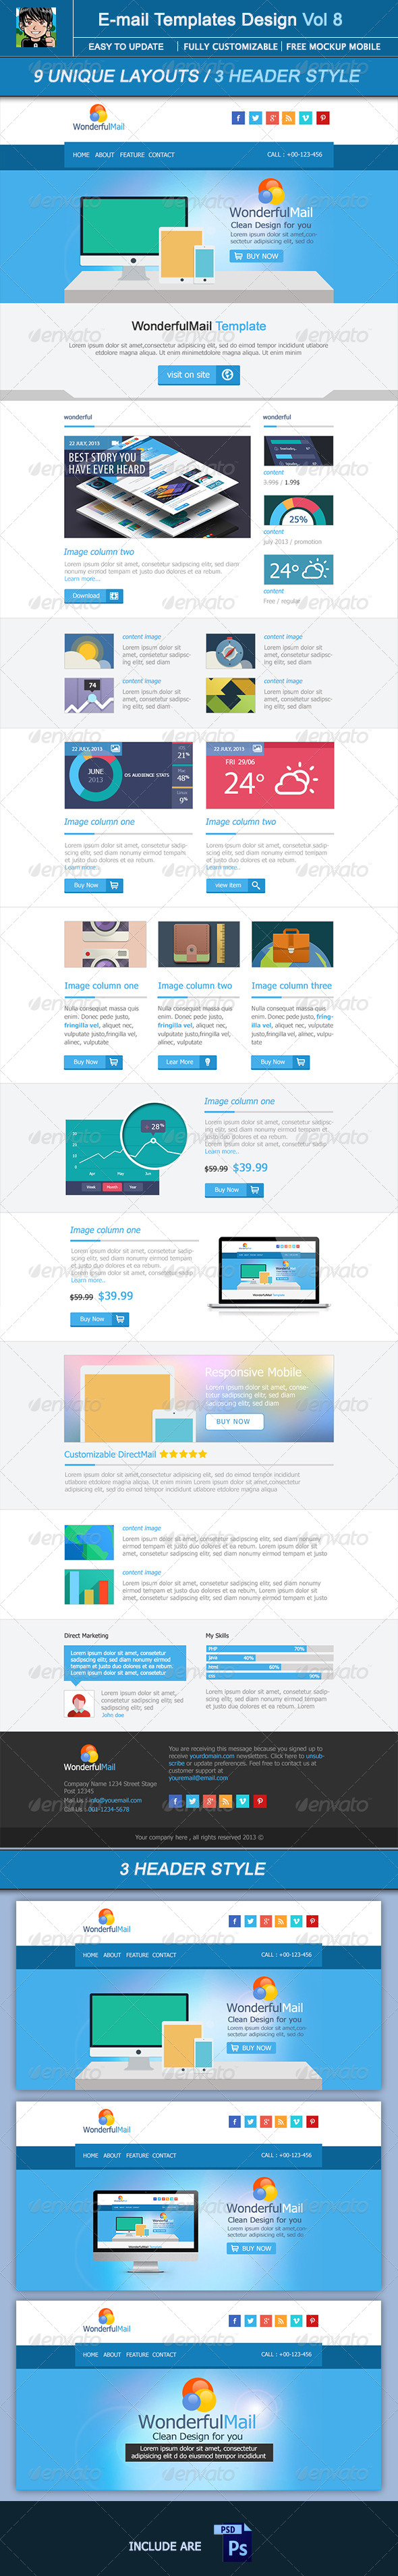 GraphicRiver WonderfulMail Email Template Design Vol 8 5244378